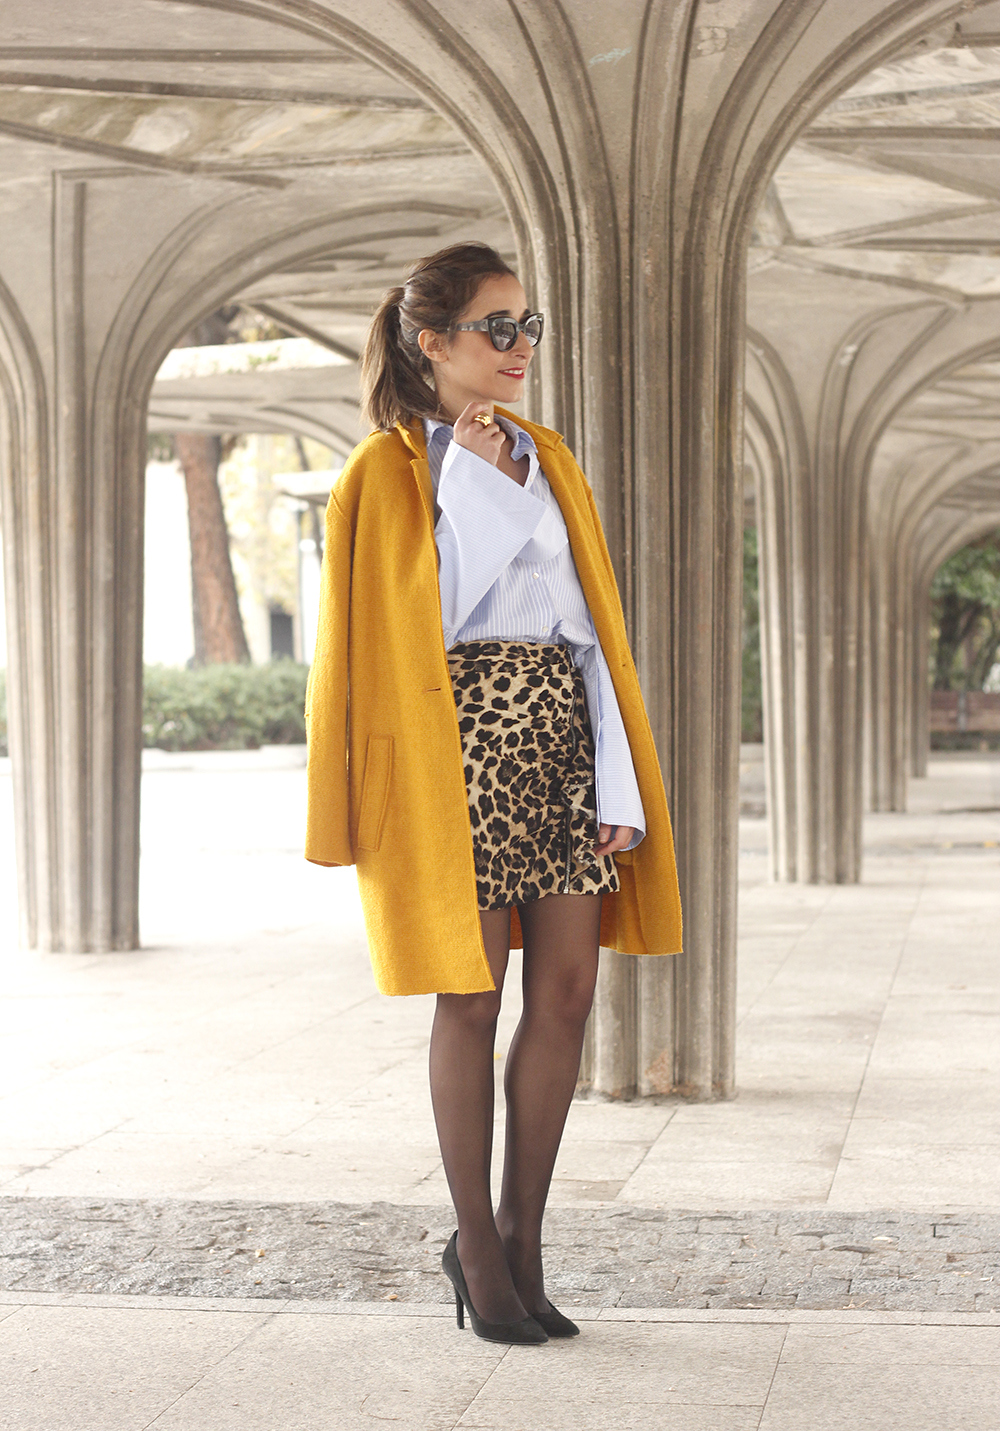 Leopard Skirt striped shirt black heels mustard coat fall outfit style fashion01